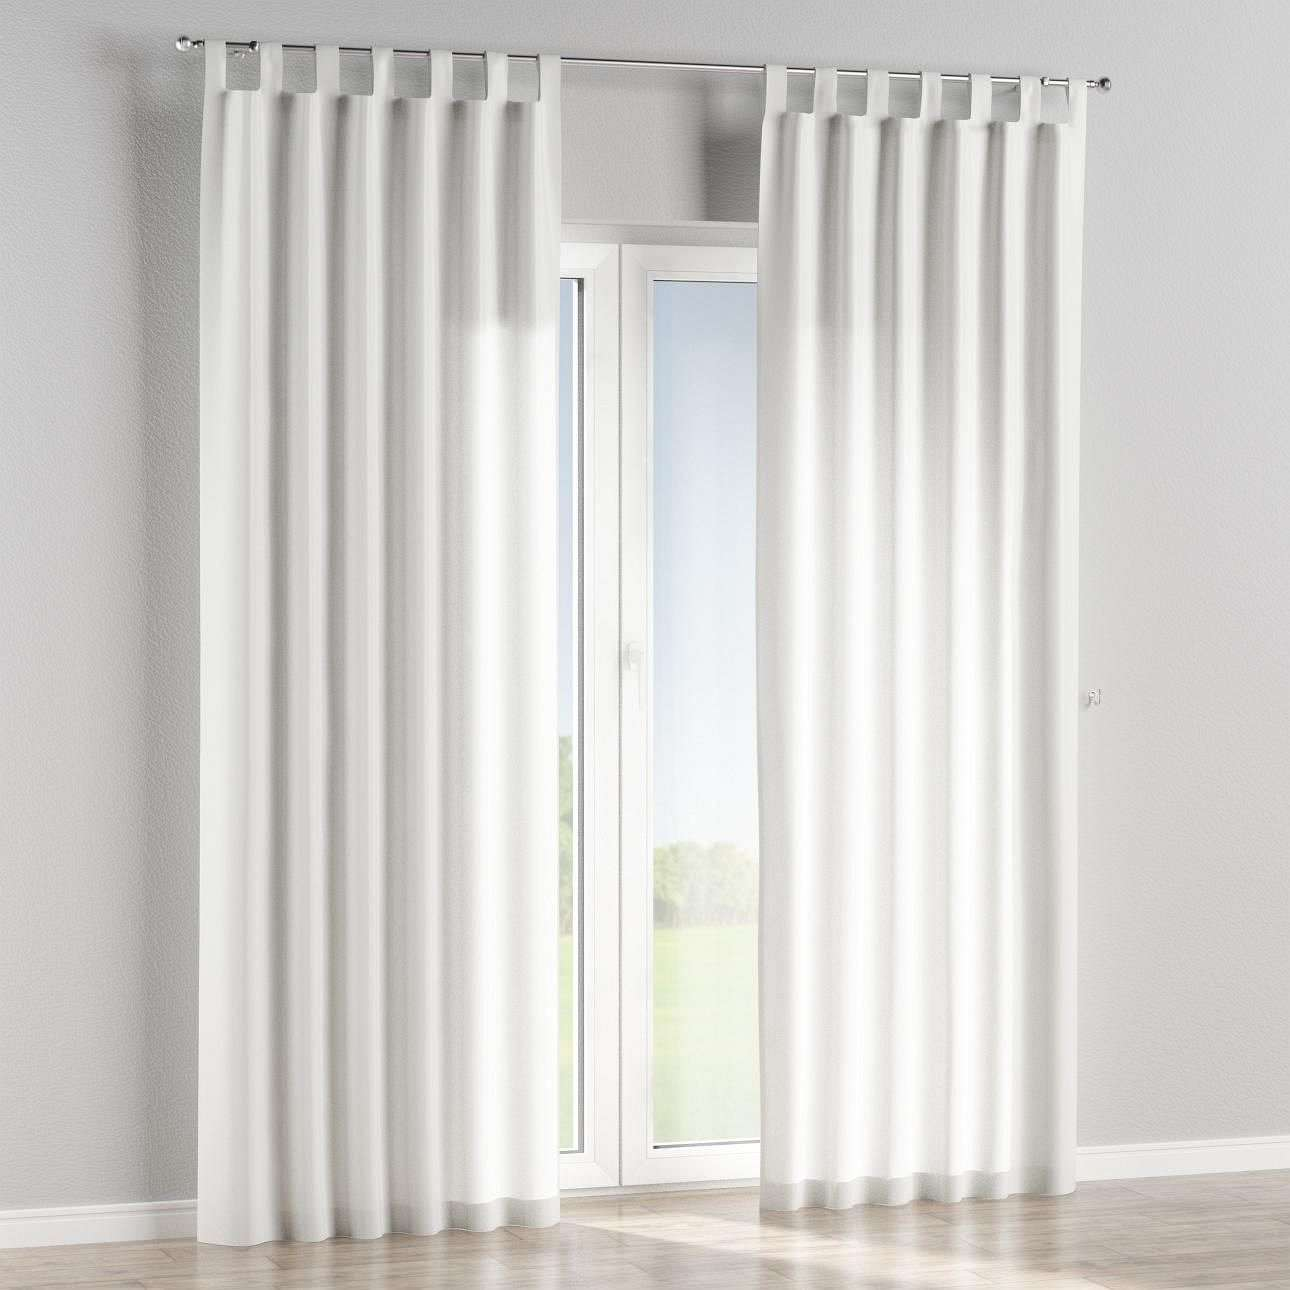 Tab top curtains in collection Christmas , fabric: 630-27